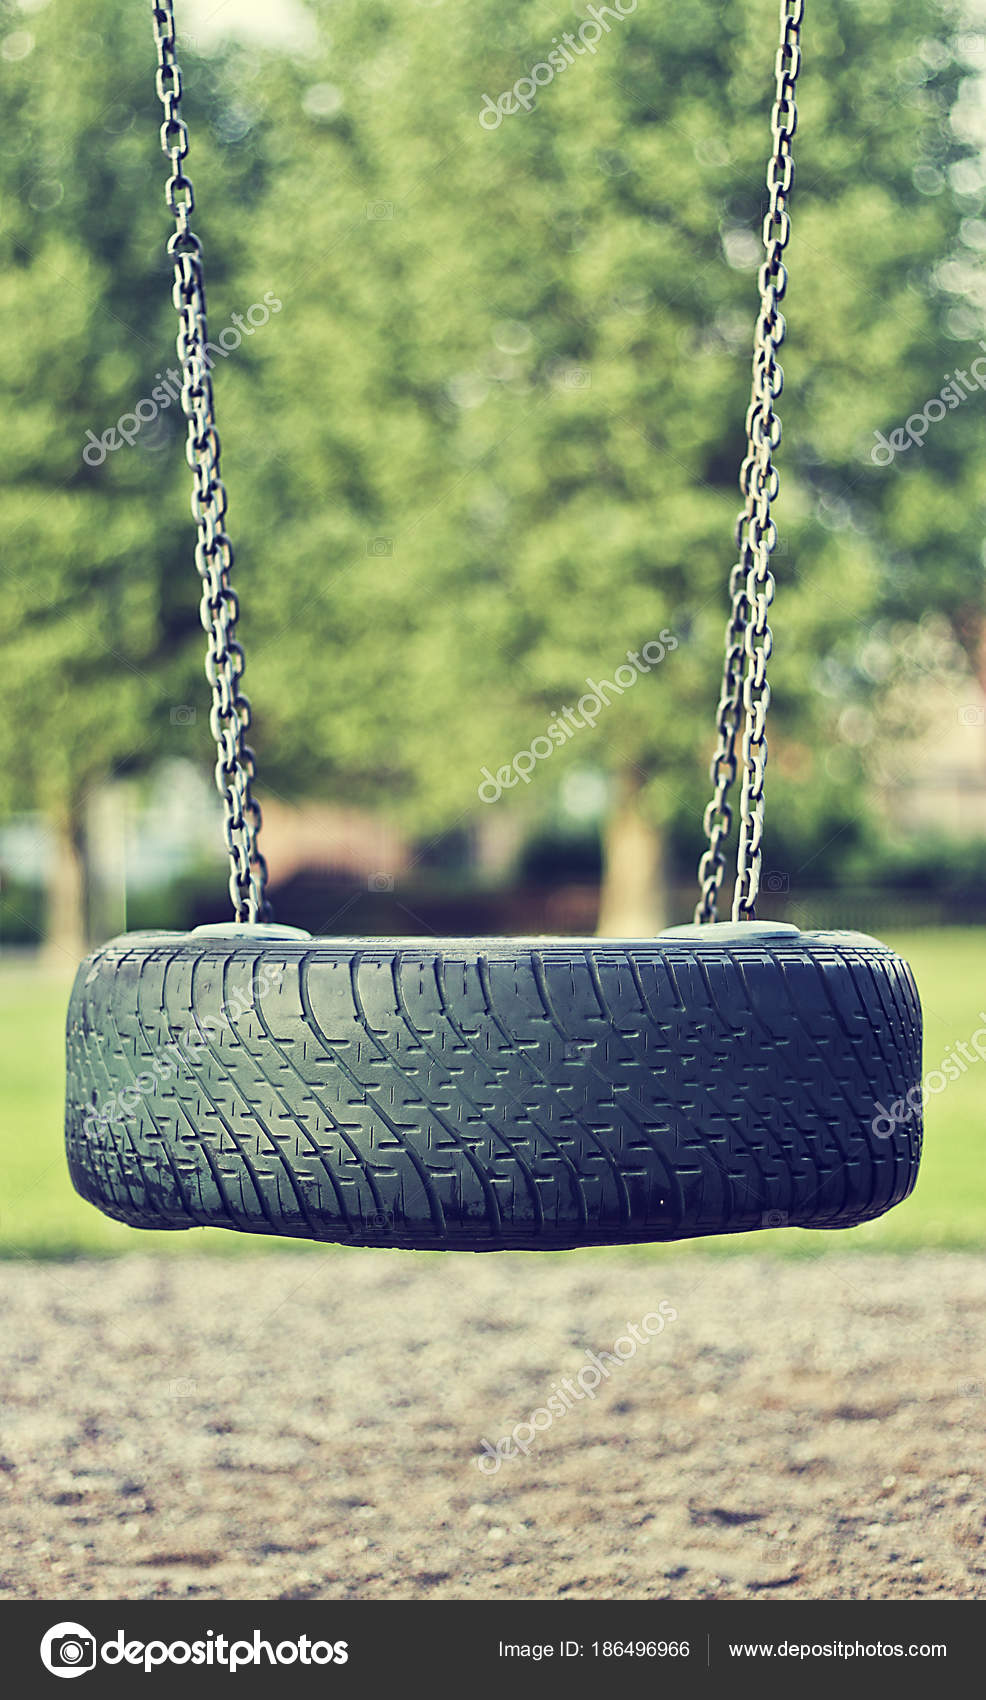 Beautiful Summer Season Specific Photograph Old Car Tire Used As A Swing For Children Play Time Theme Stock Photo C Jezepidesigns 186496966